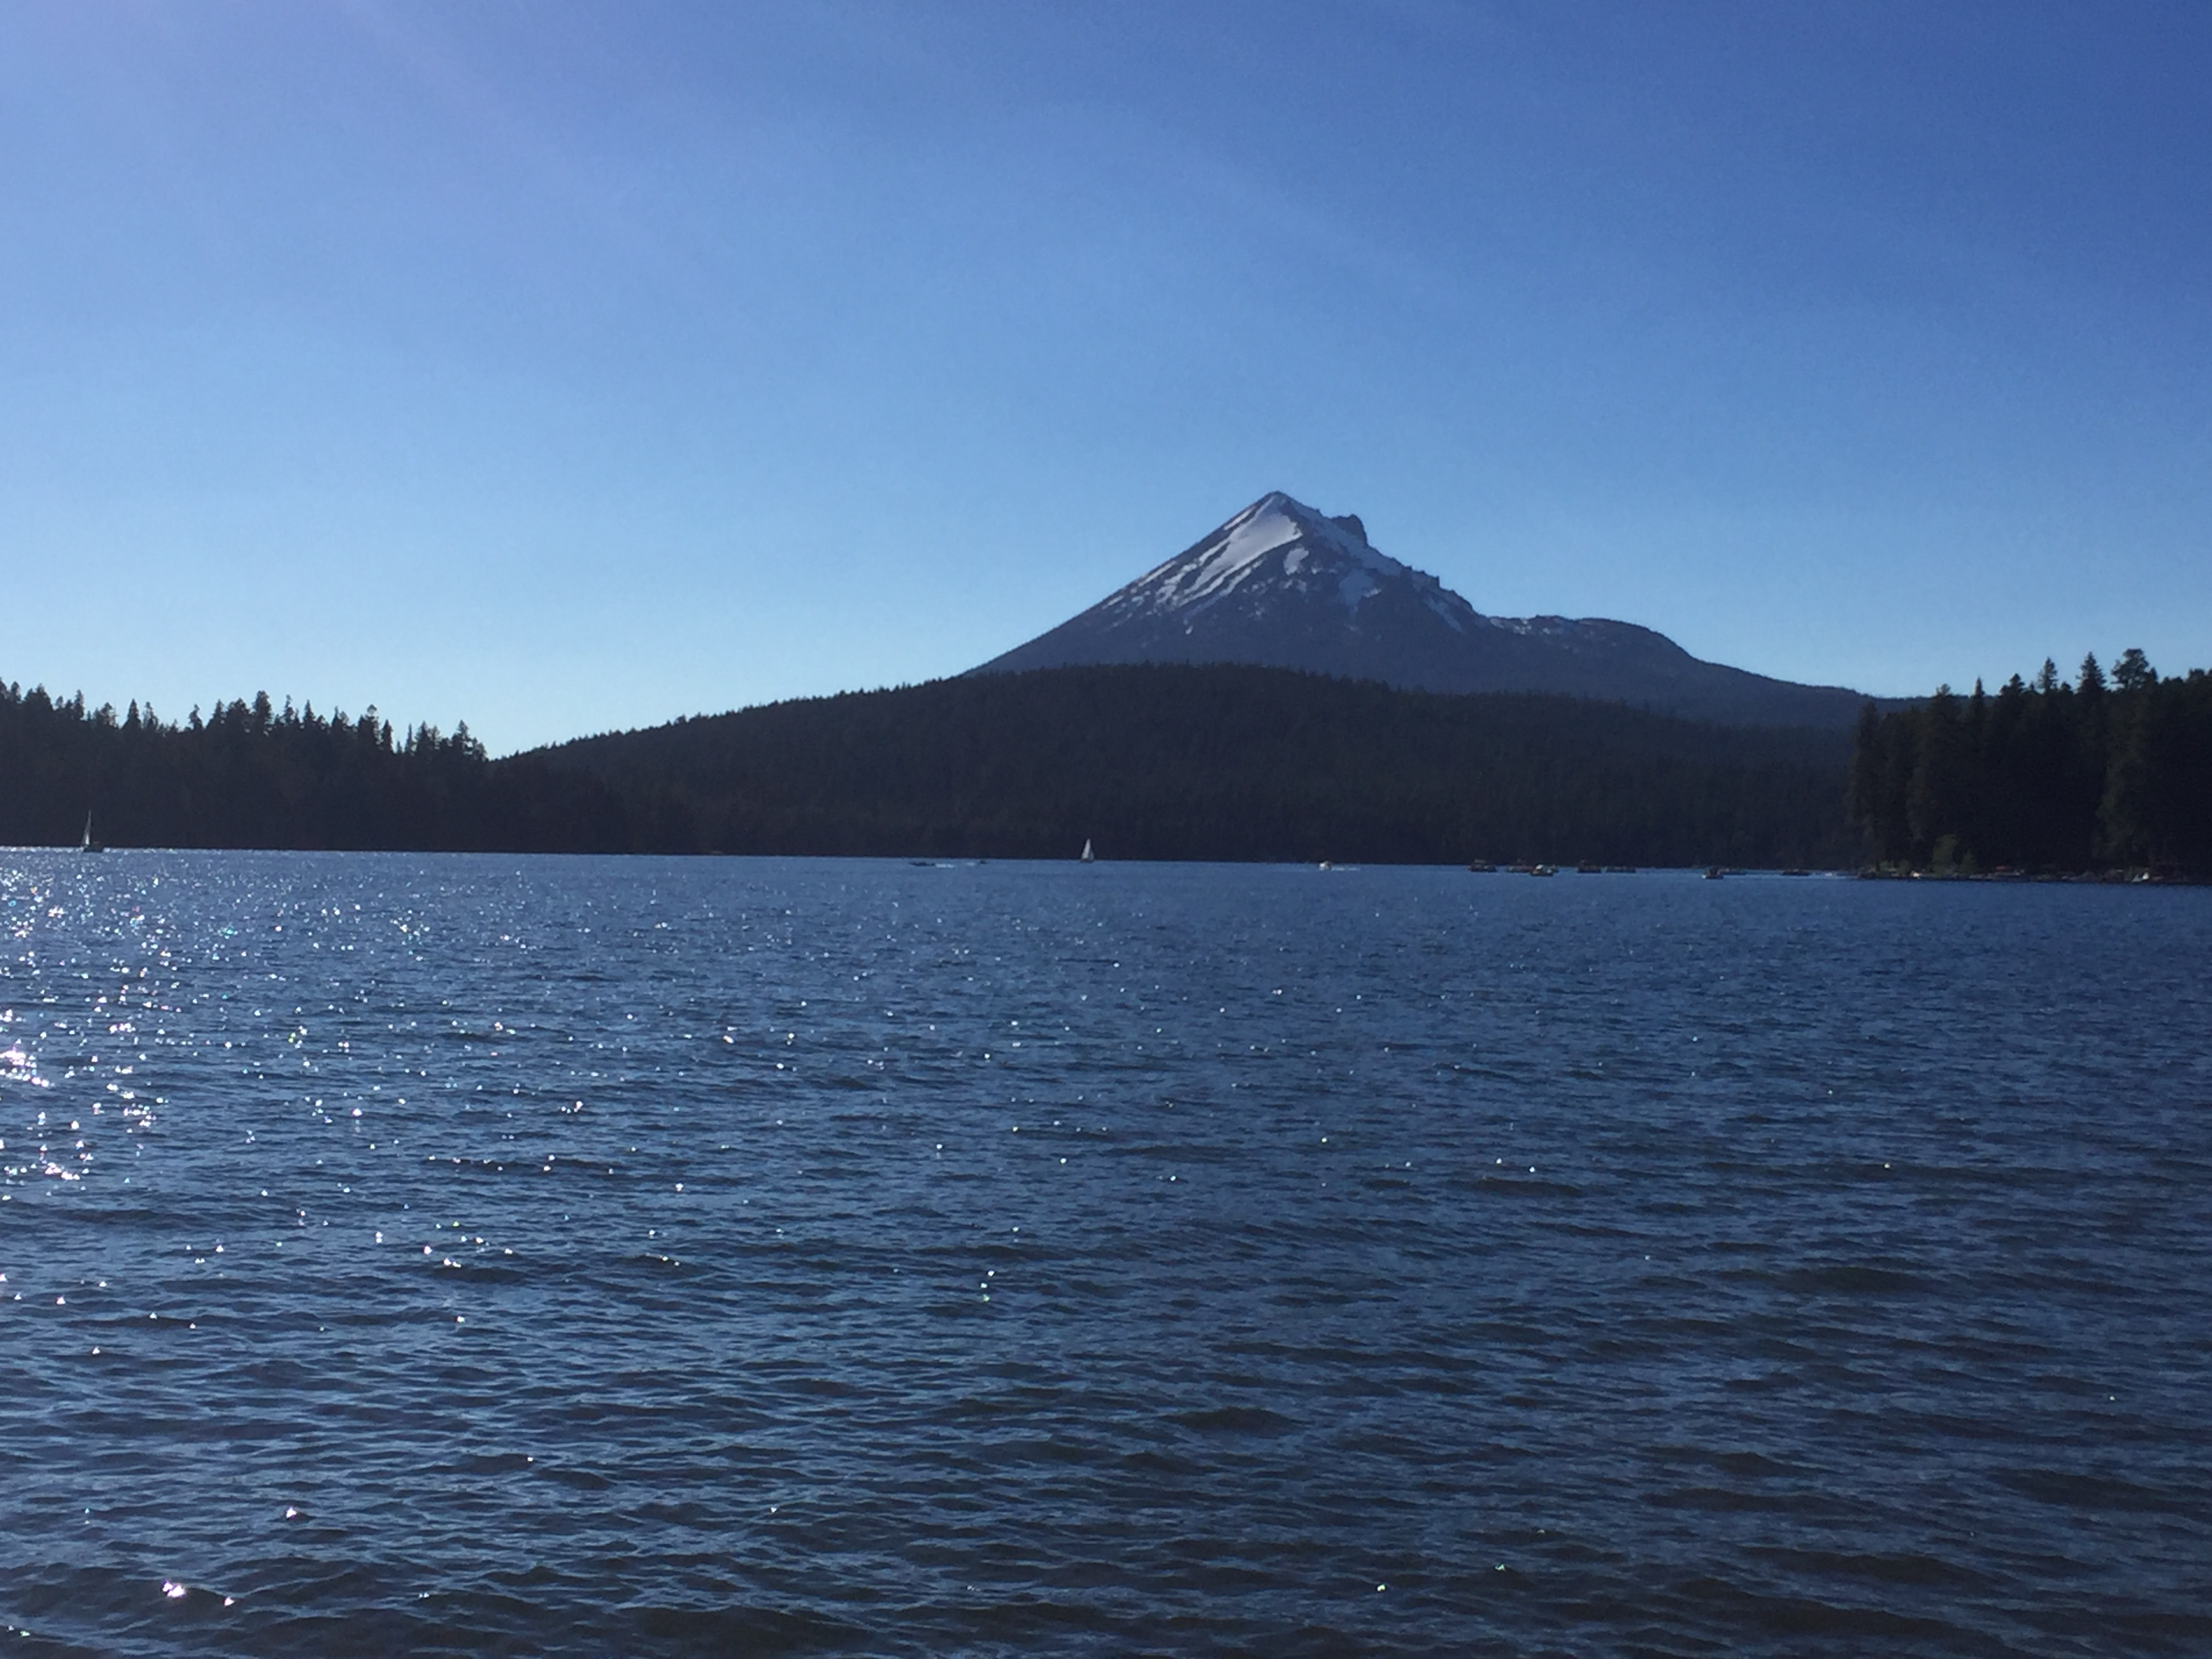 Mt. McLaughlin from Lake of the Woods